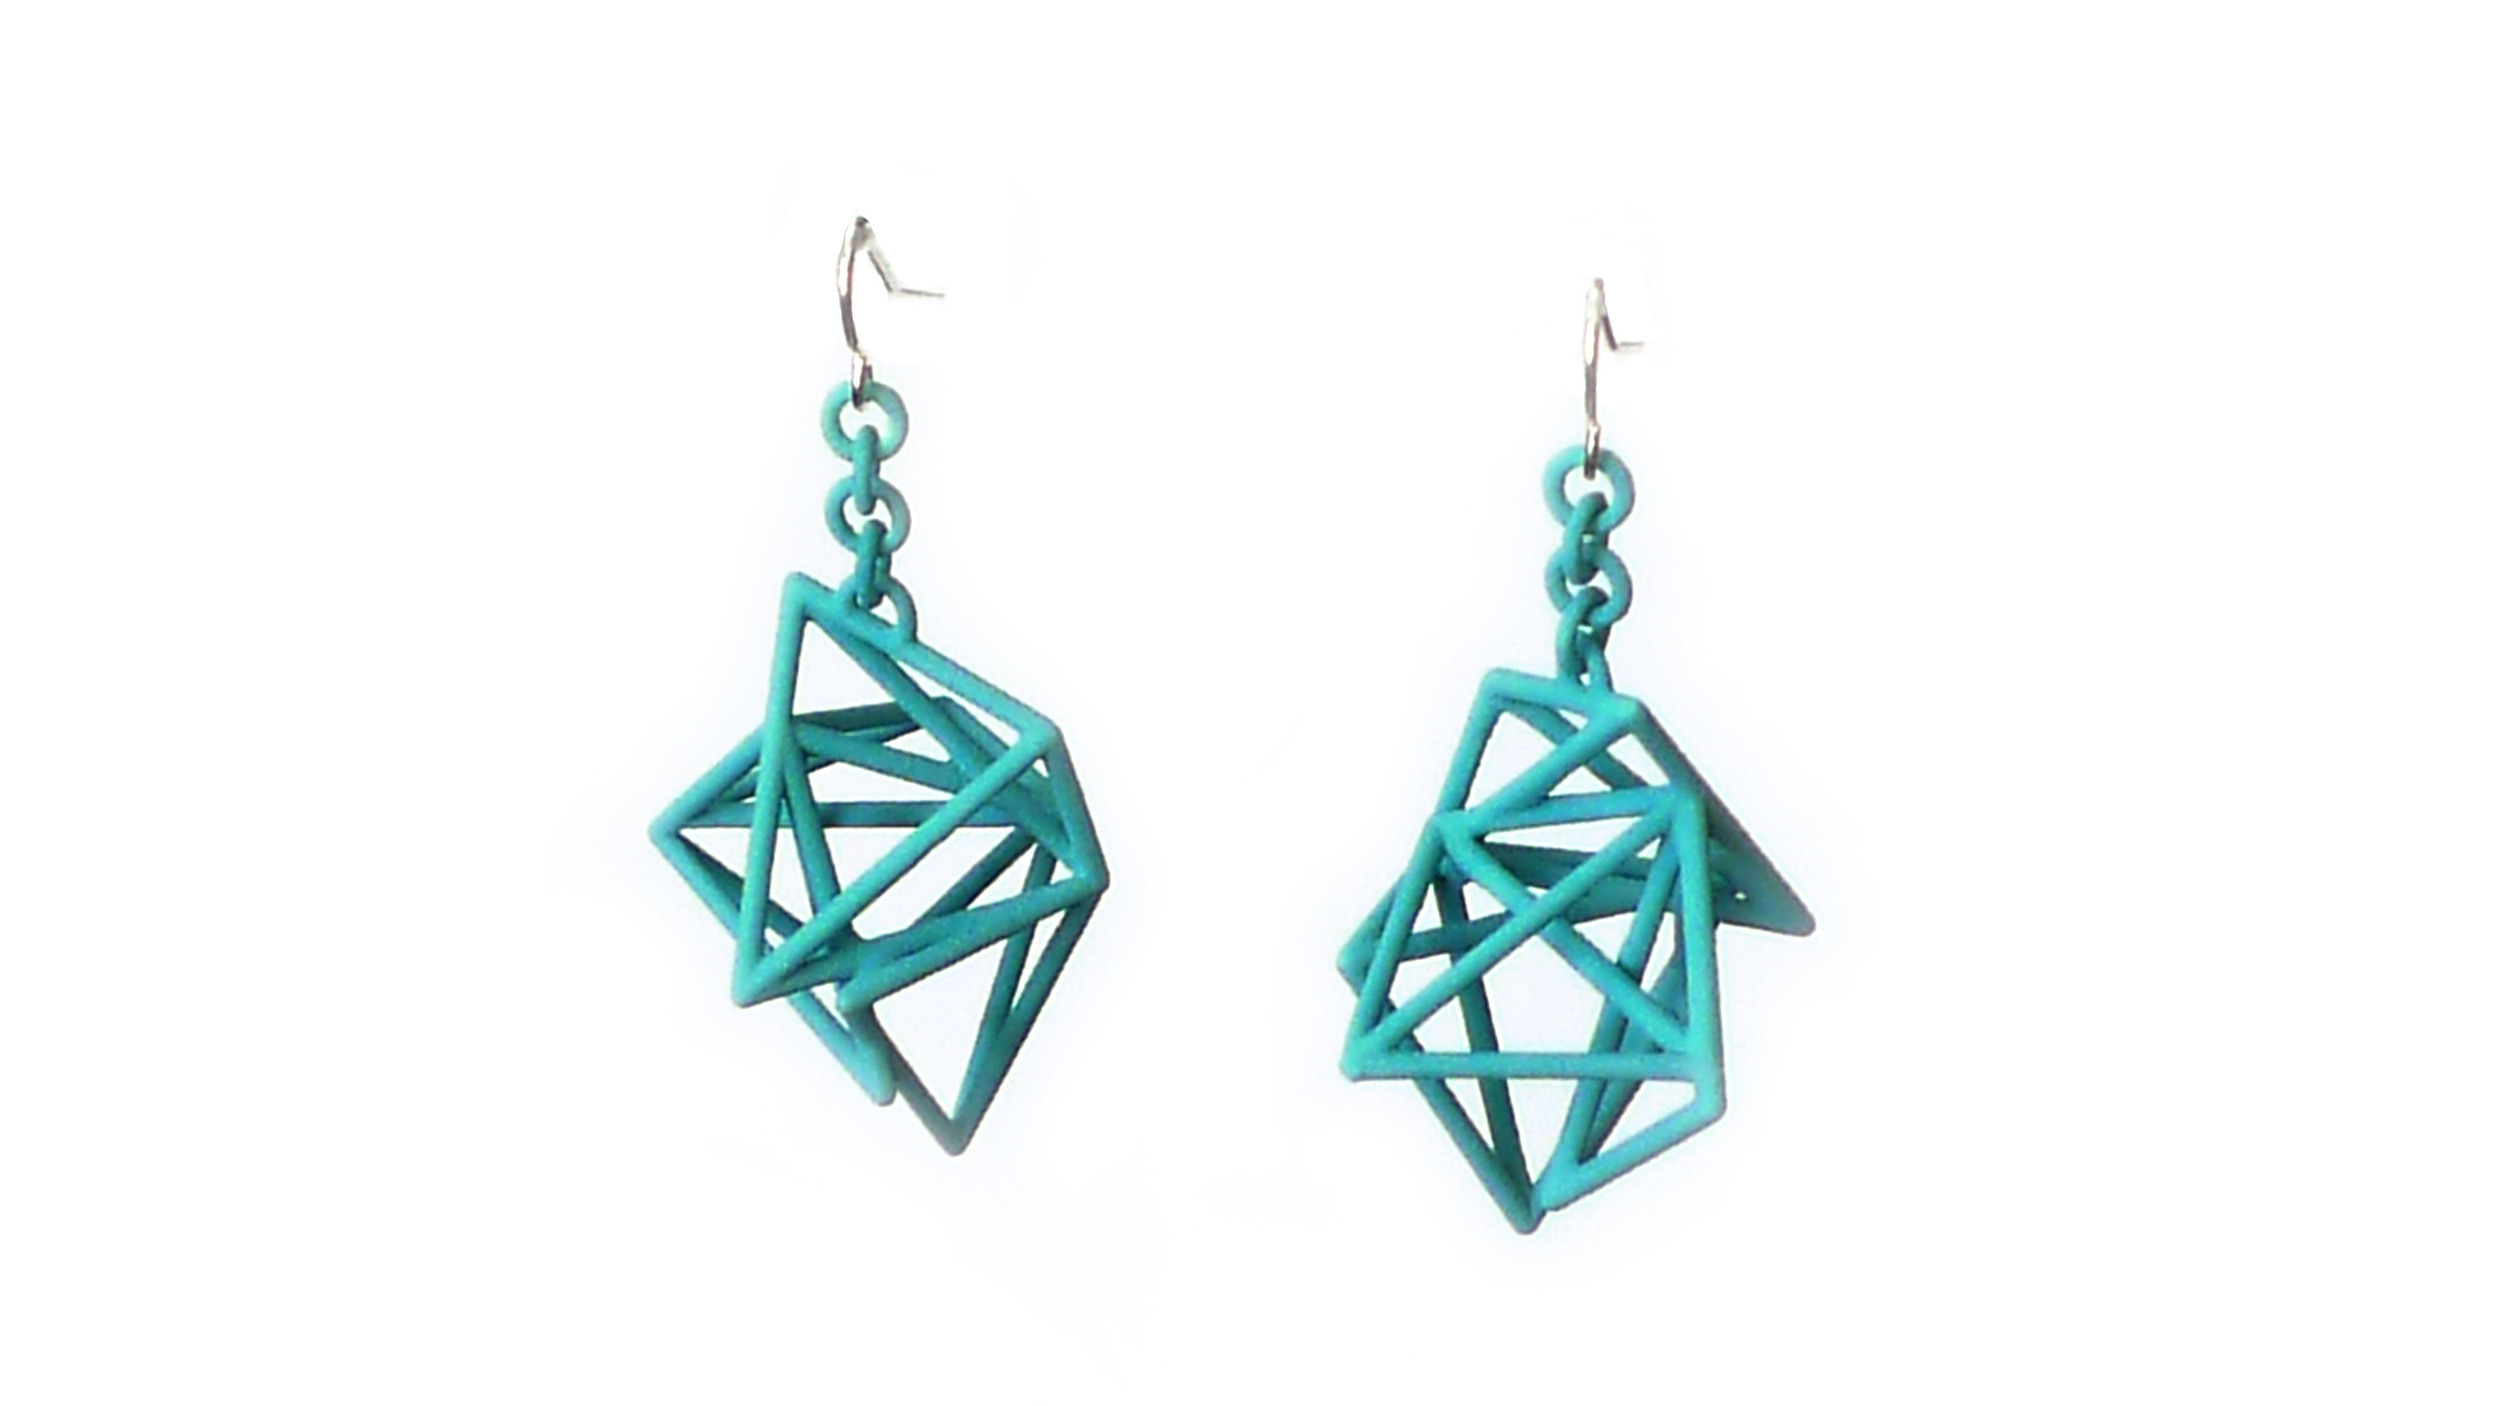 Tetryn Earrings (Drops) Large Wireframe   6000: In Nylon $12  6090: In Steel $66